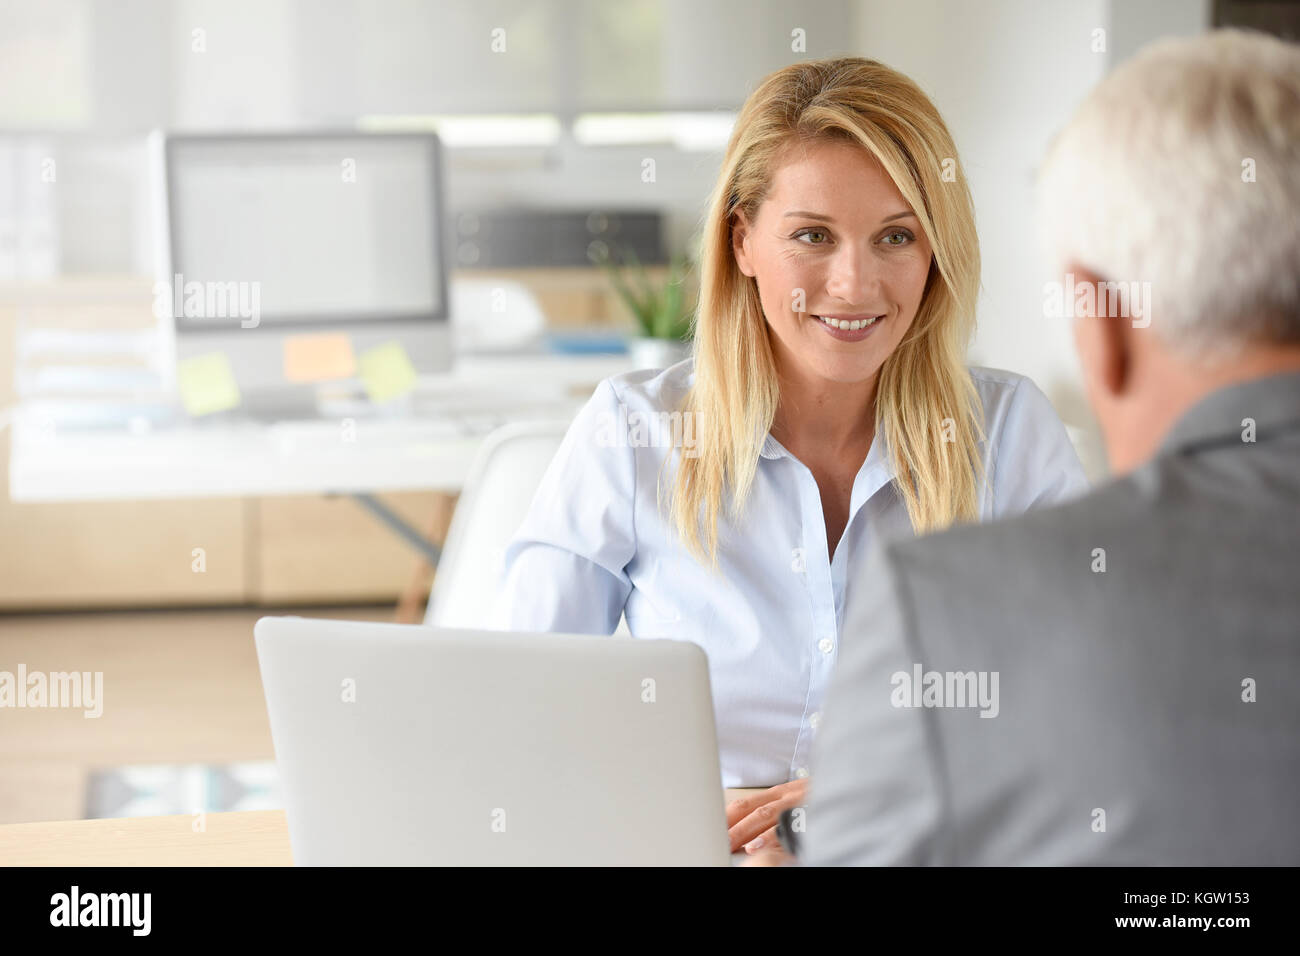 Human Resources Manager empfangen Kandidat für den Job Stockbild